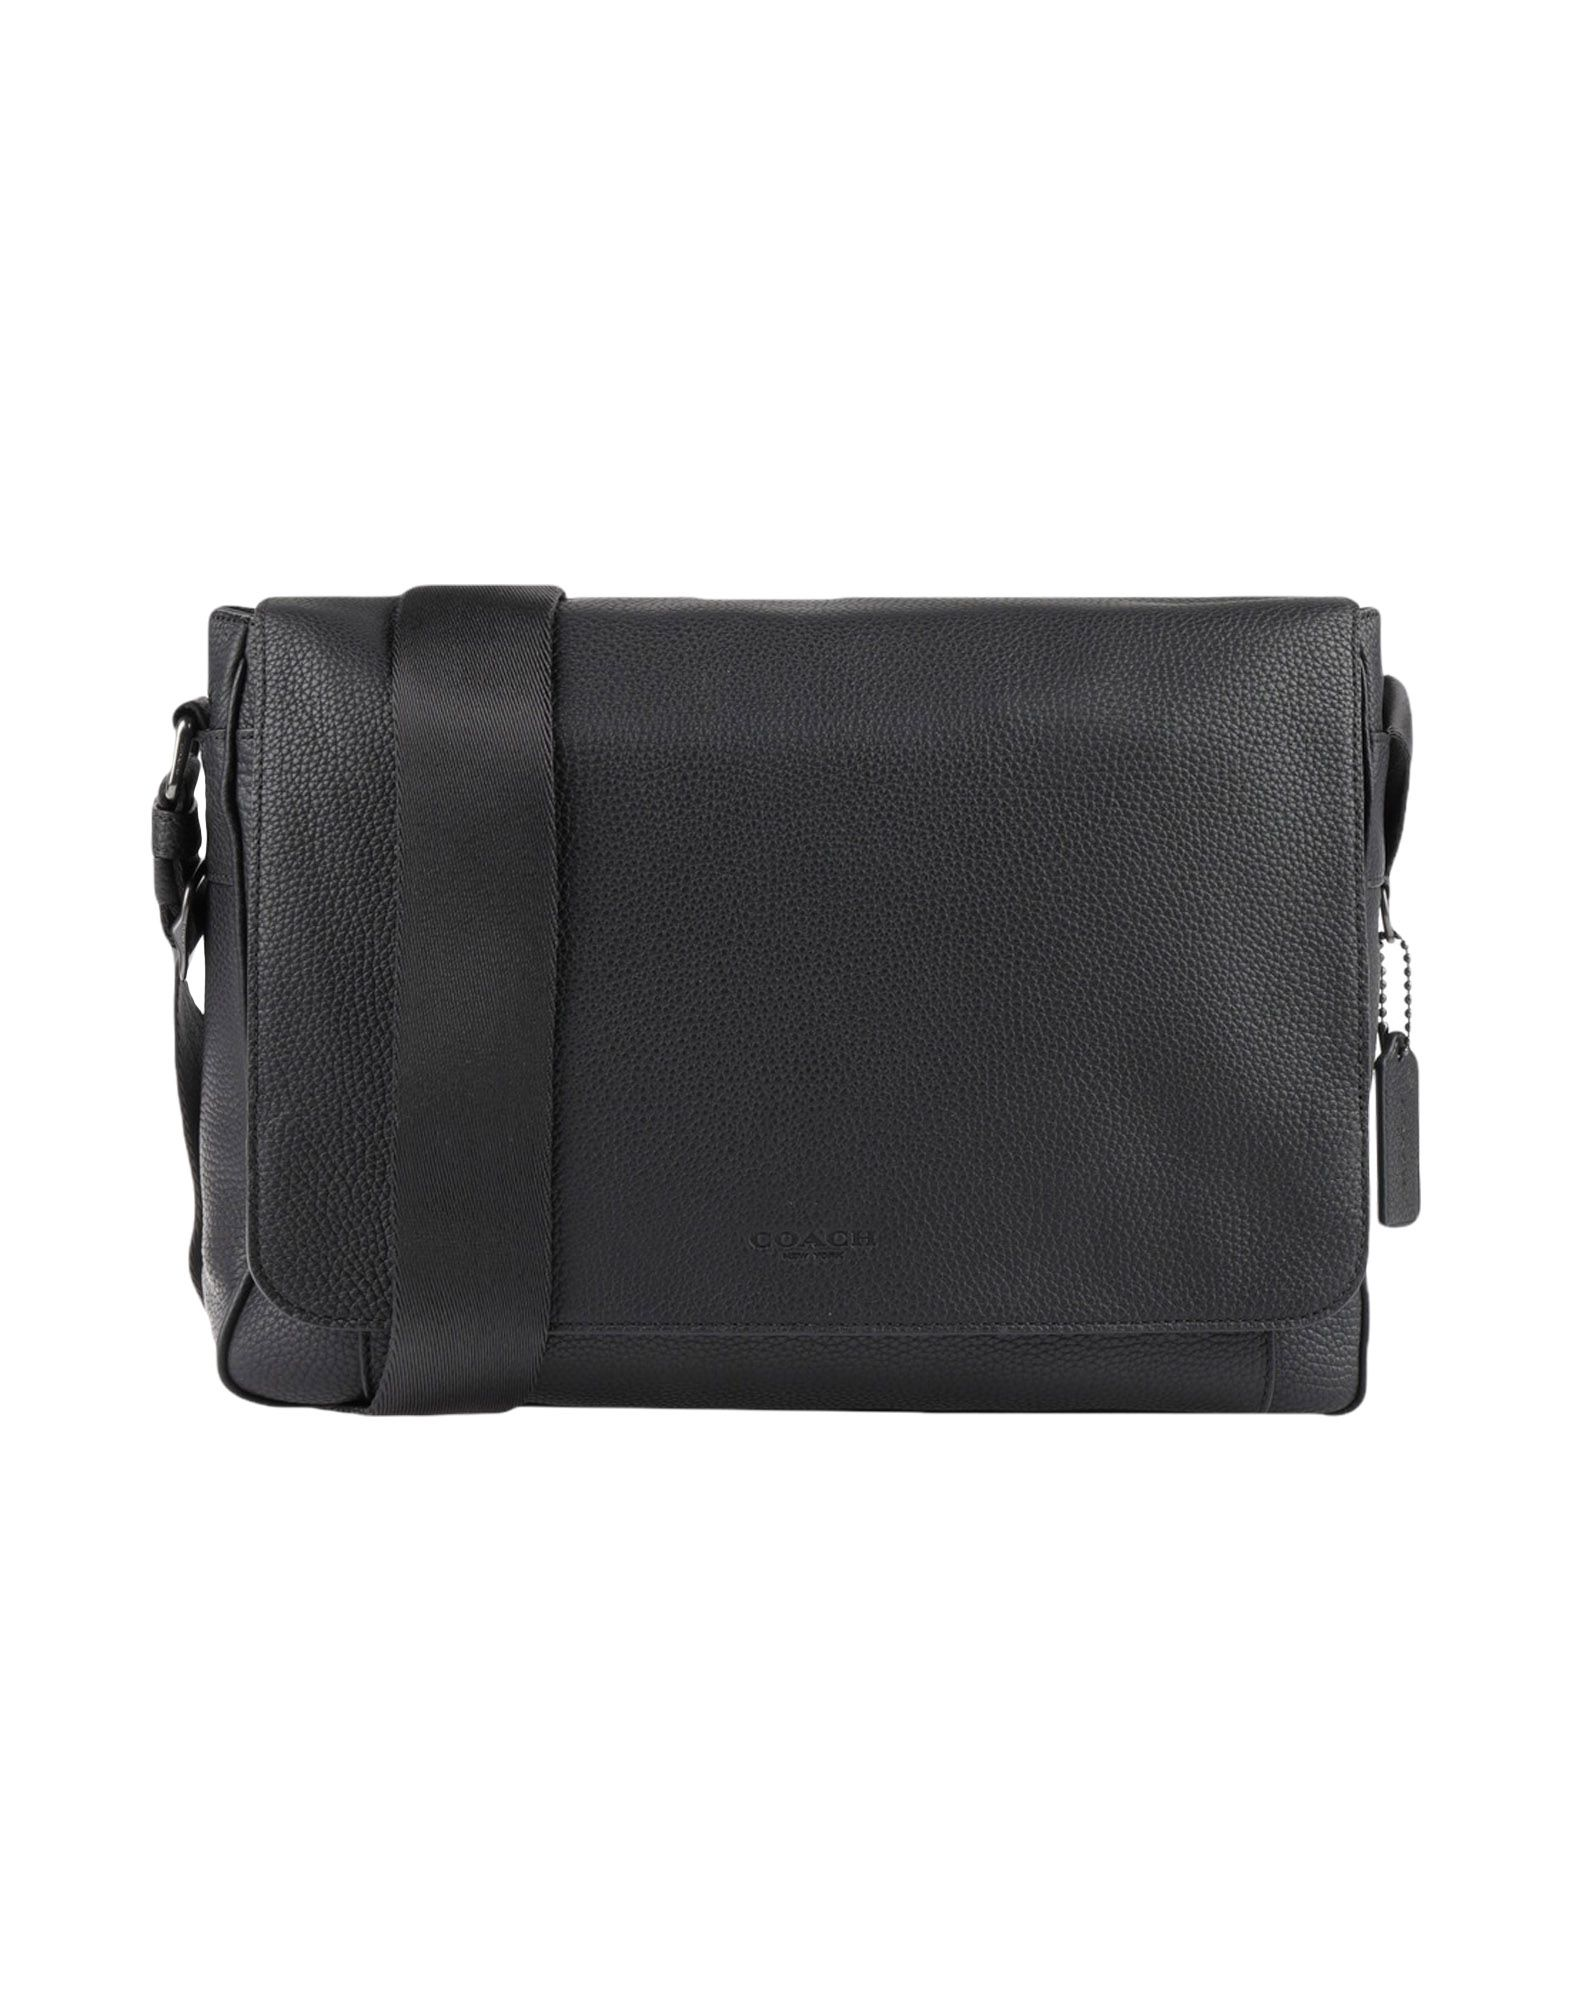 COACH Work Bags. textured leather, logo, solid color, magnetic fastening, internal pockets, adjustable shoulder strap, fully lined, medium, contains non-textile parts of animal origin. Soft Leather